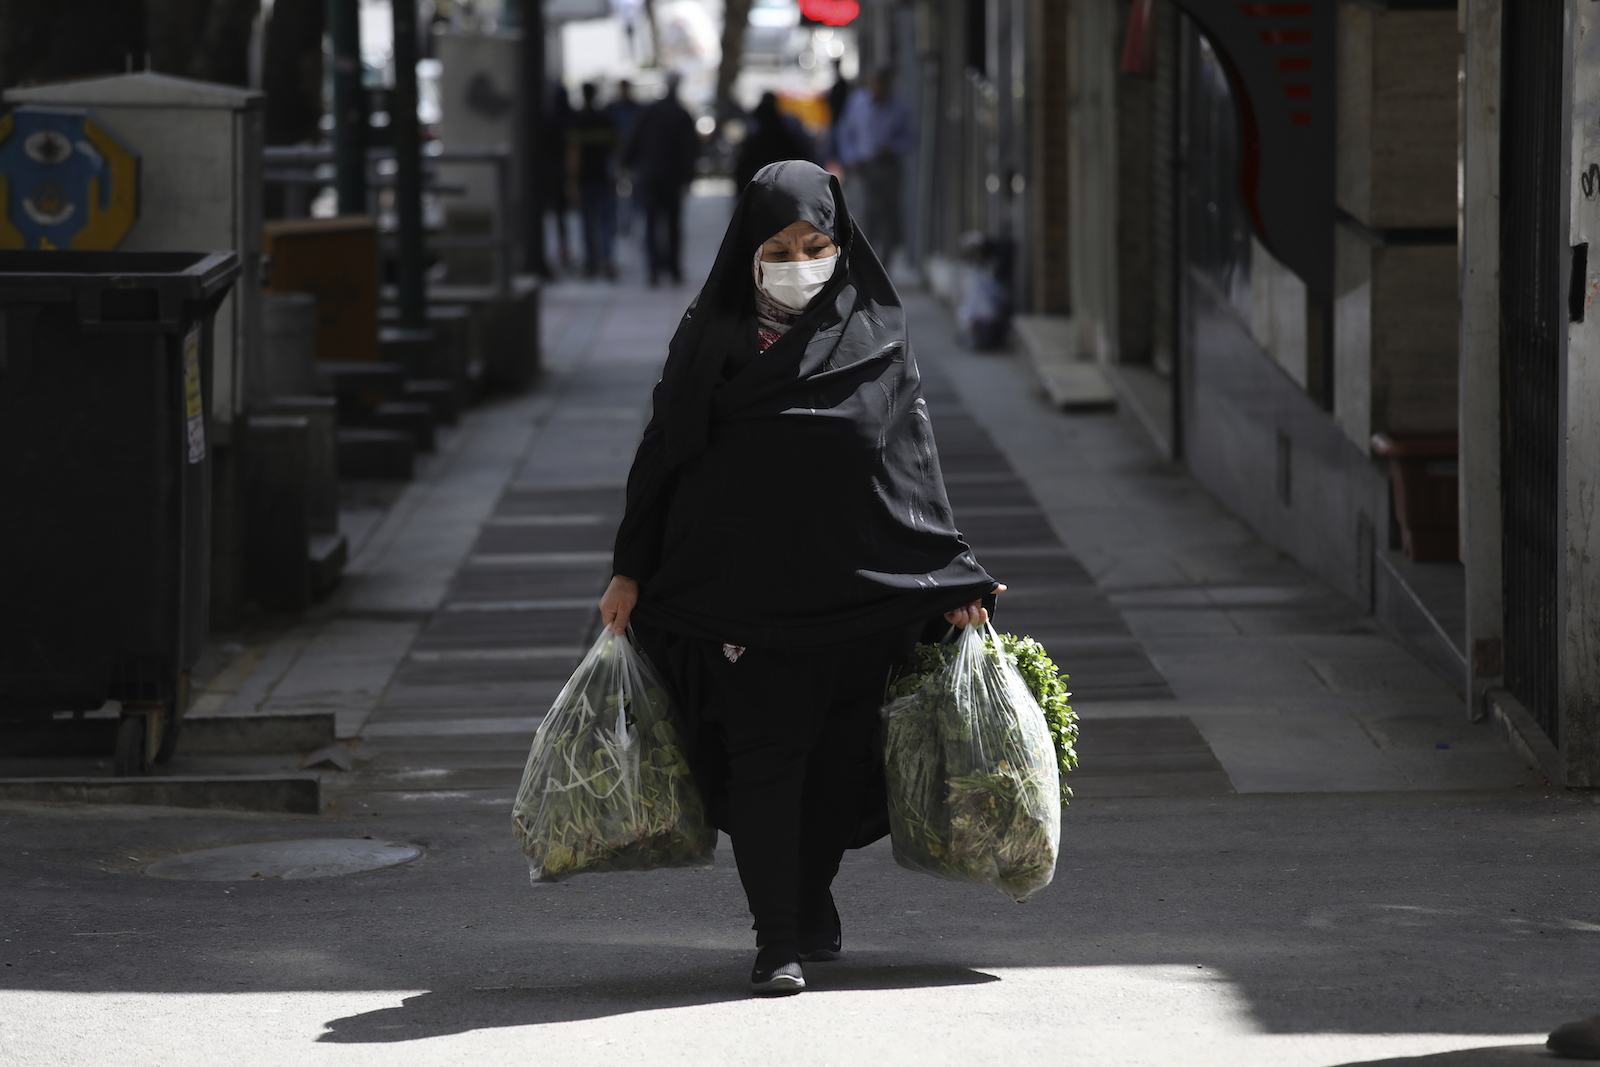 Iran will use IMF funds for terror groups, says United States  spokeswoman